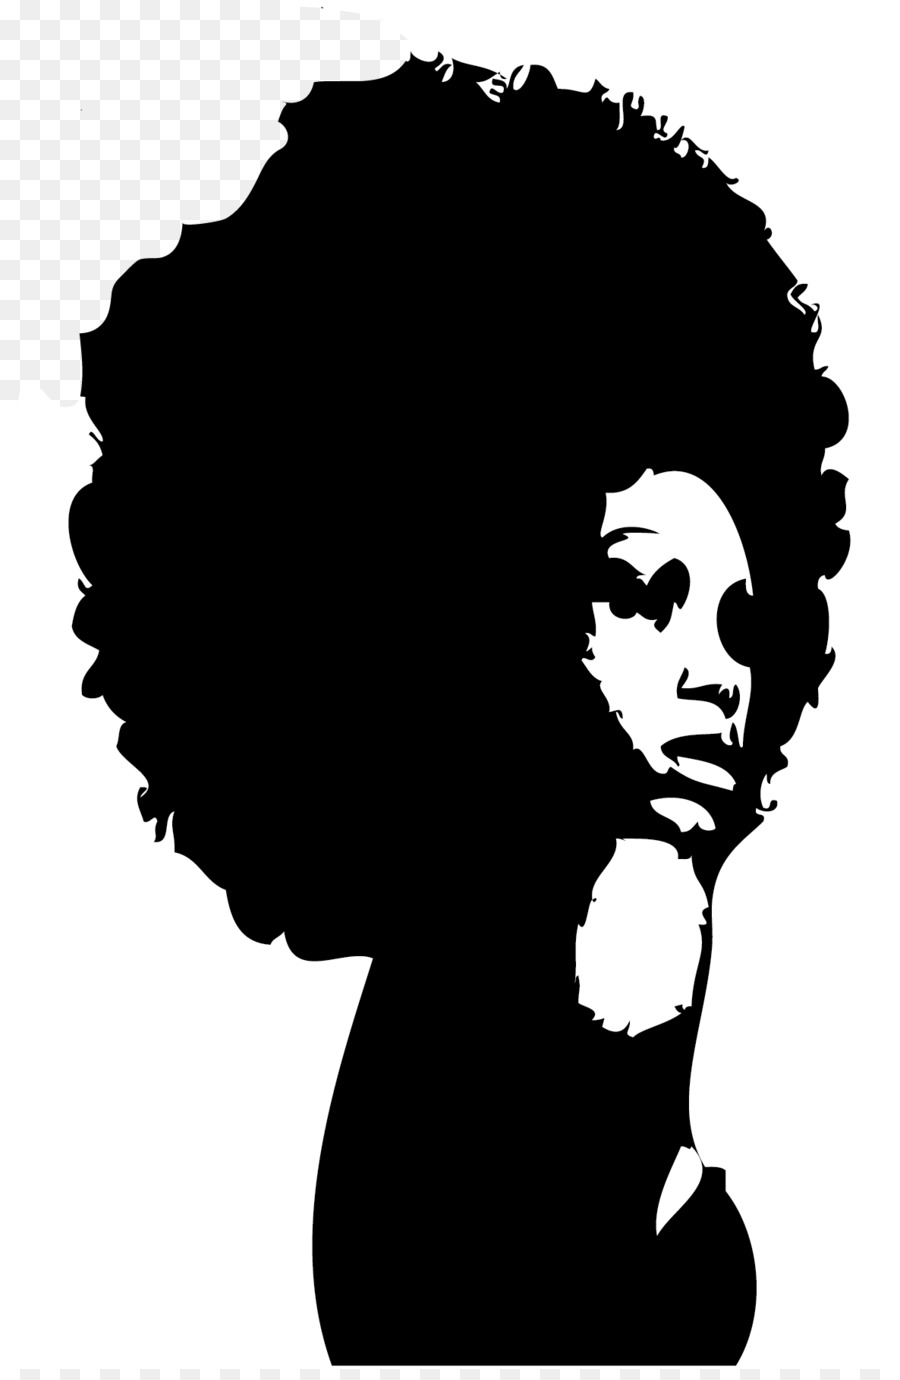 Natural Hair Png Black Woman Face Silhouette.